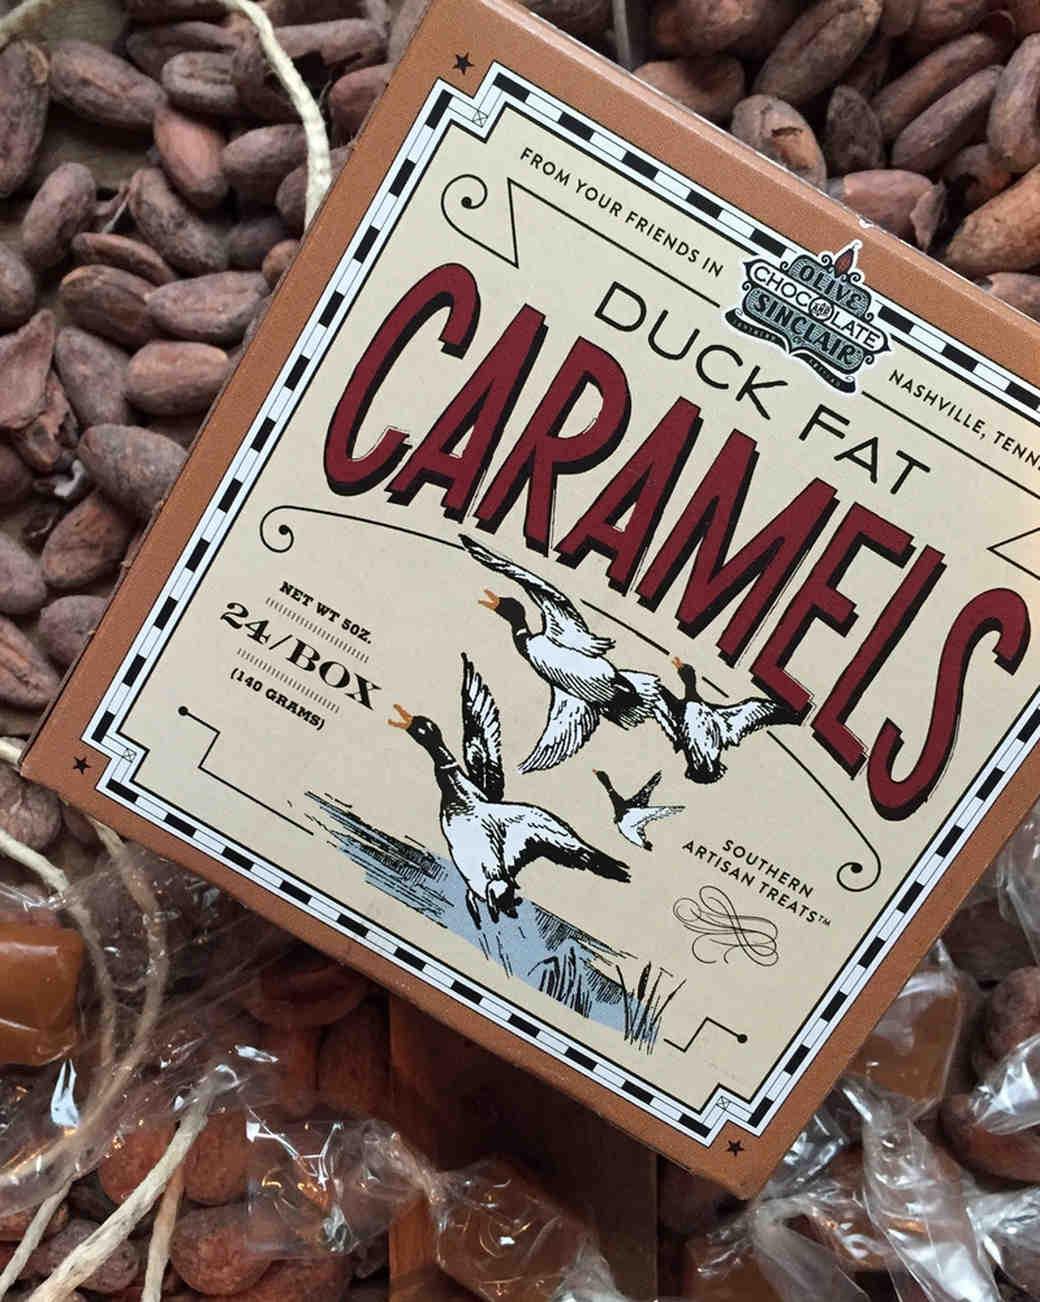 valentines-day-gift-guide-him-duckfat-caramels-0115.jpg